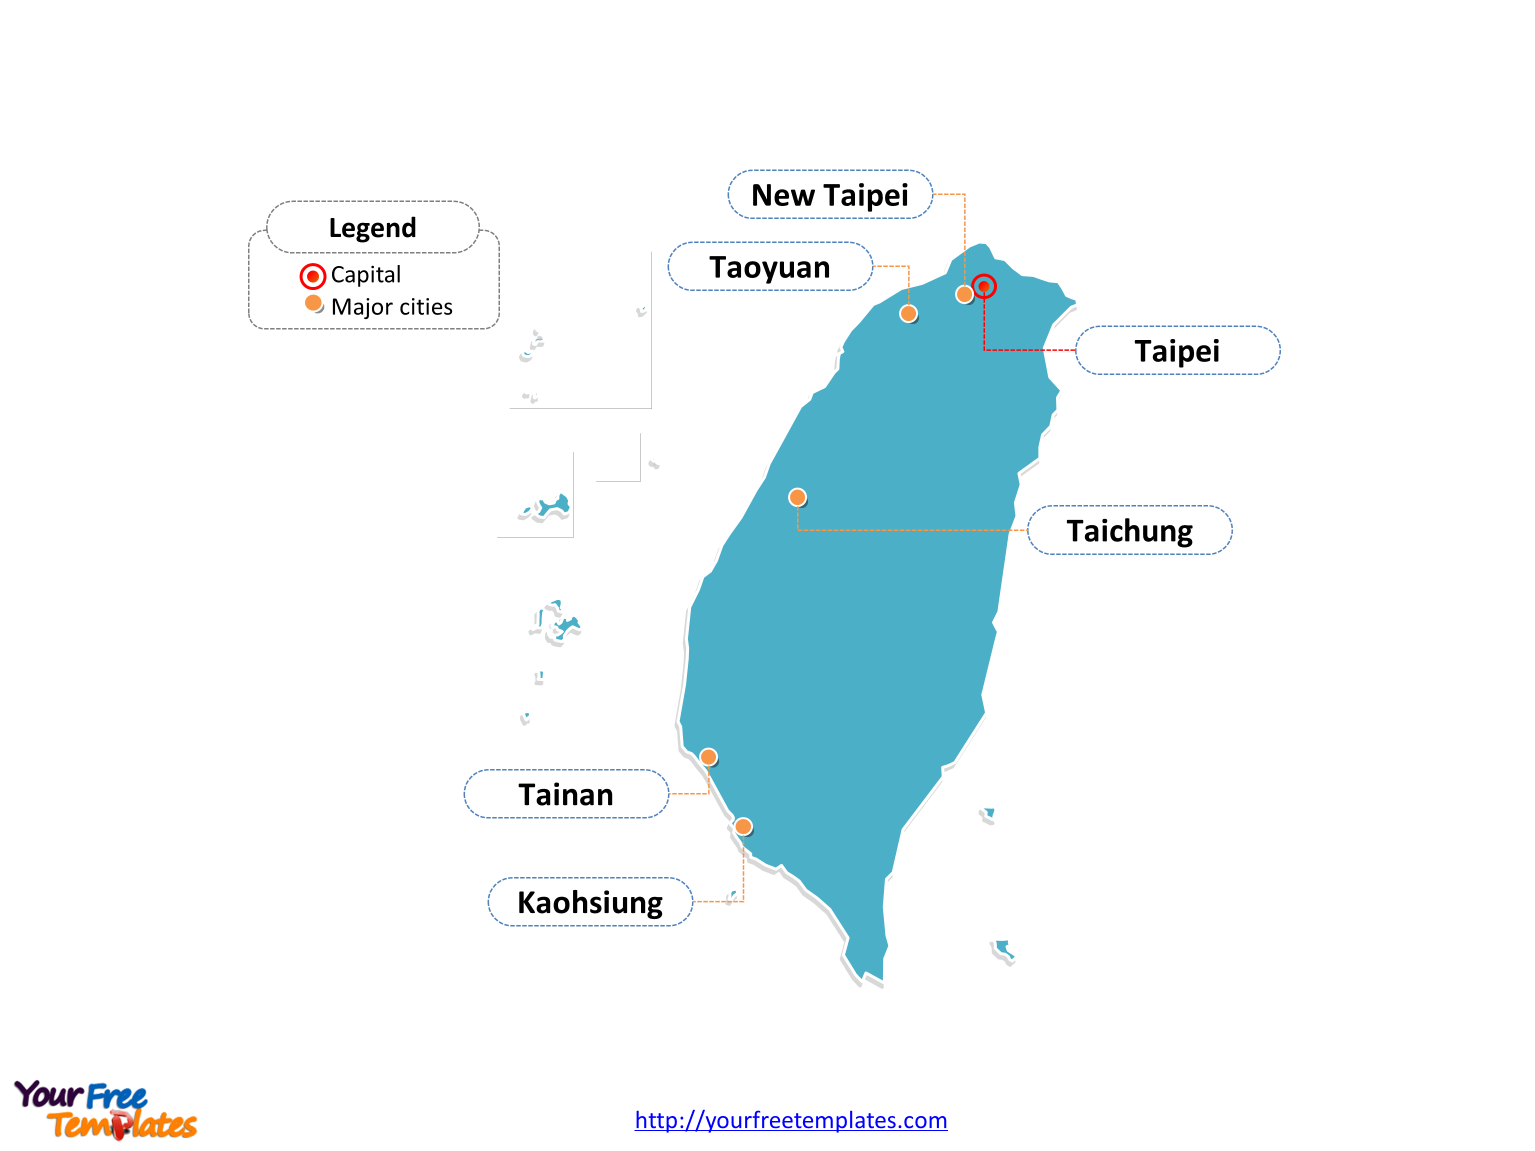 Taiwan map labeled with cities